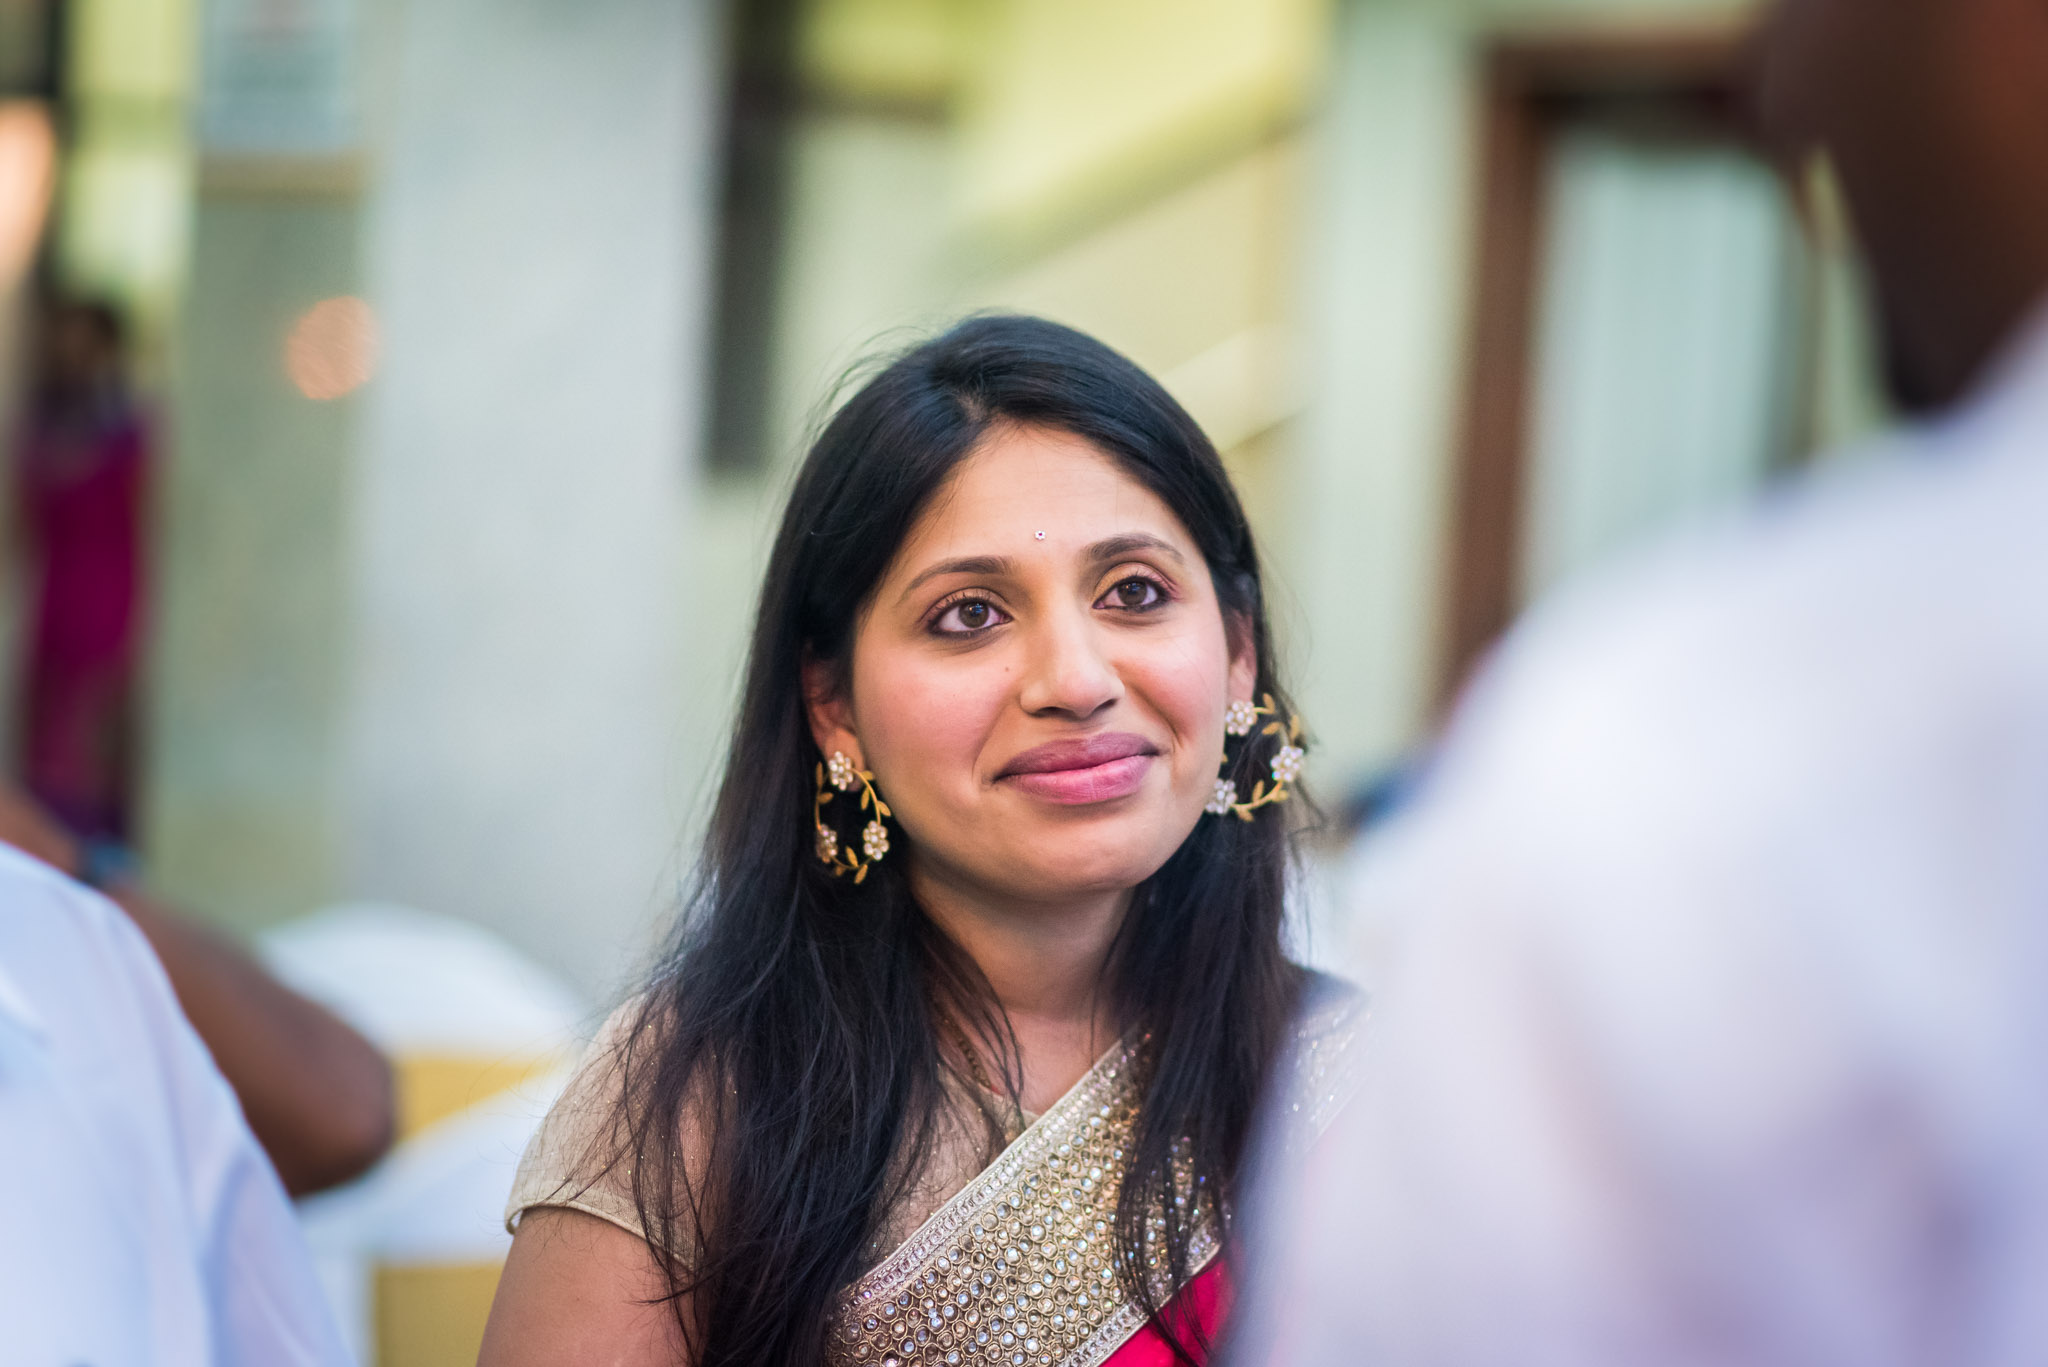 WhatKnot-Candid-Wedding-Photography-Mumbai-Bangalore-235